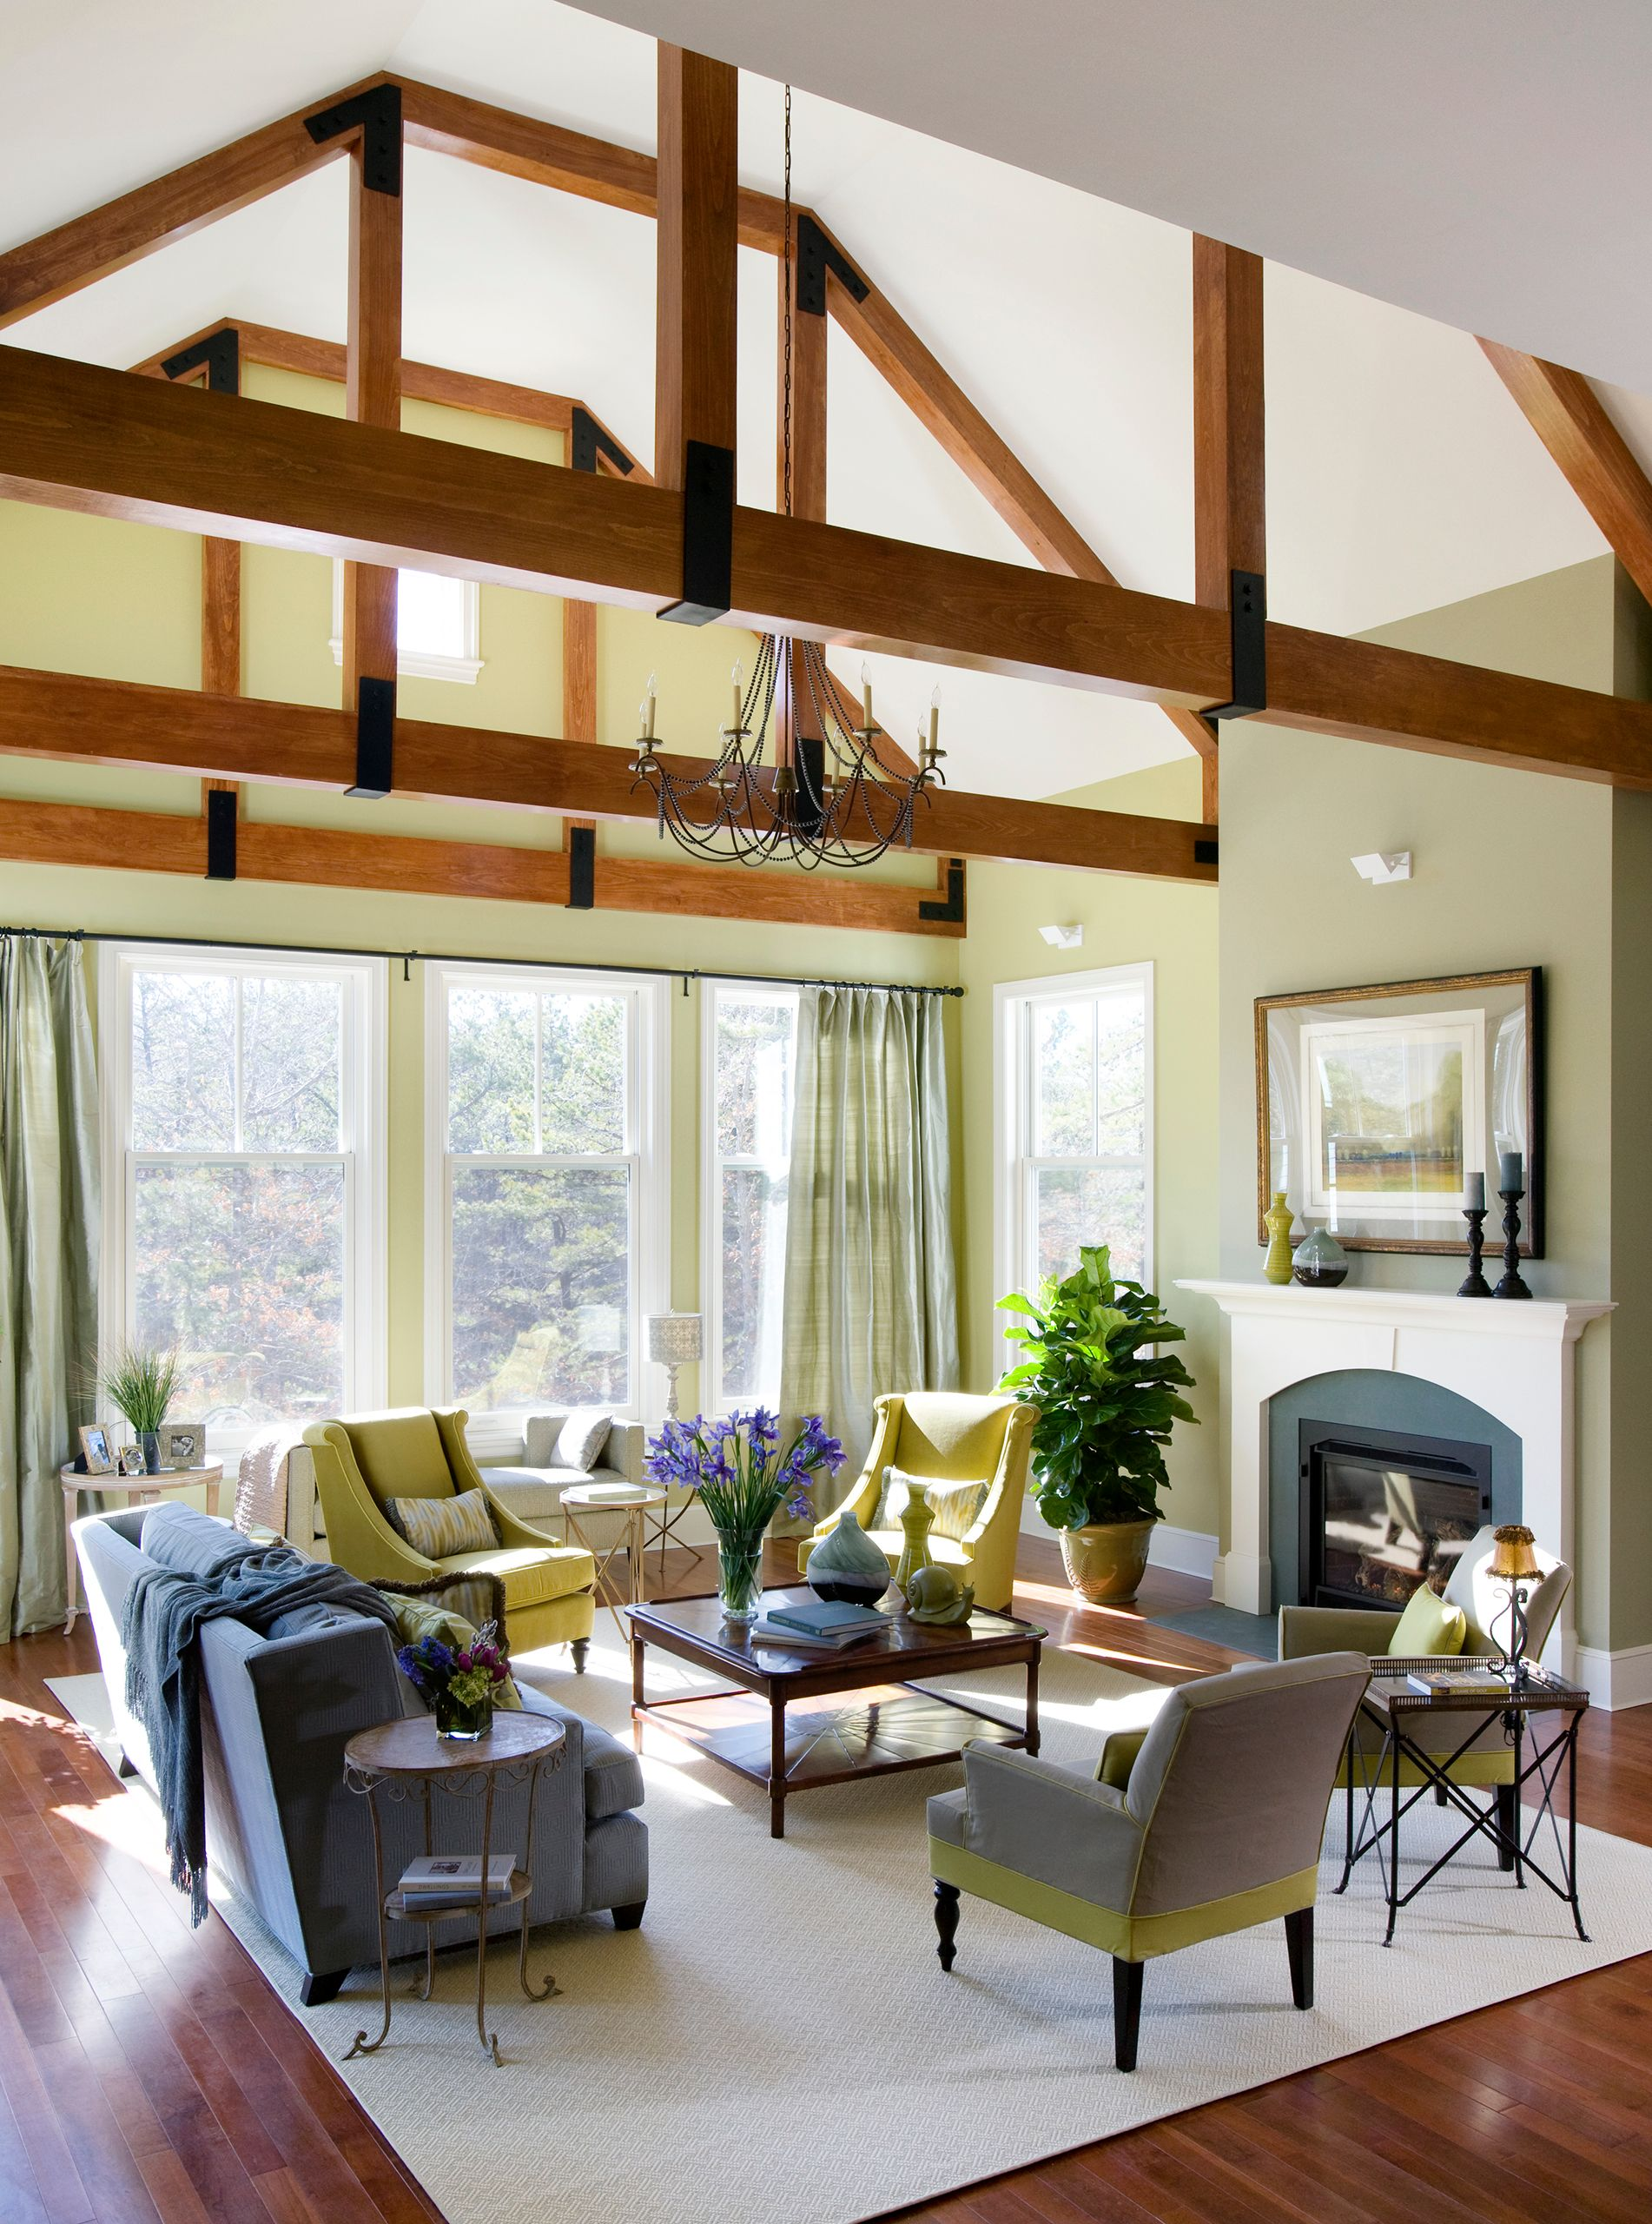 TalcottPines-ThePineHills-PlymouthMA-GreatRoom.jpg